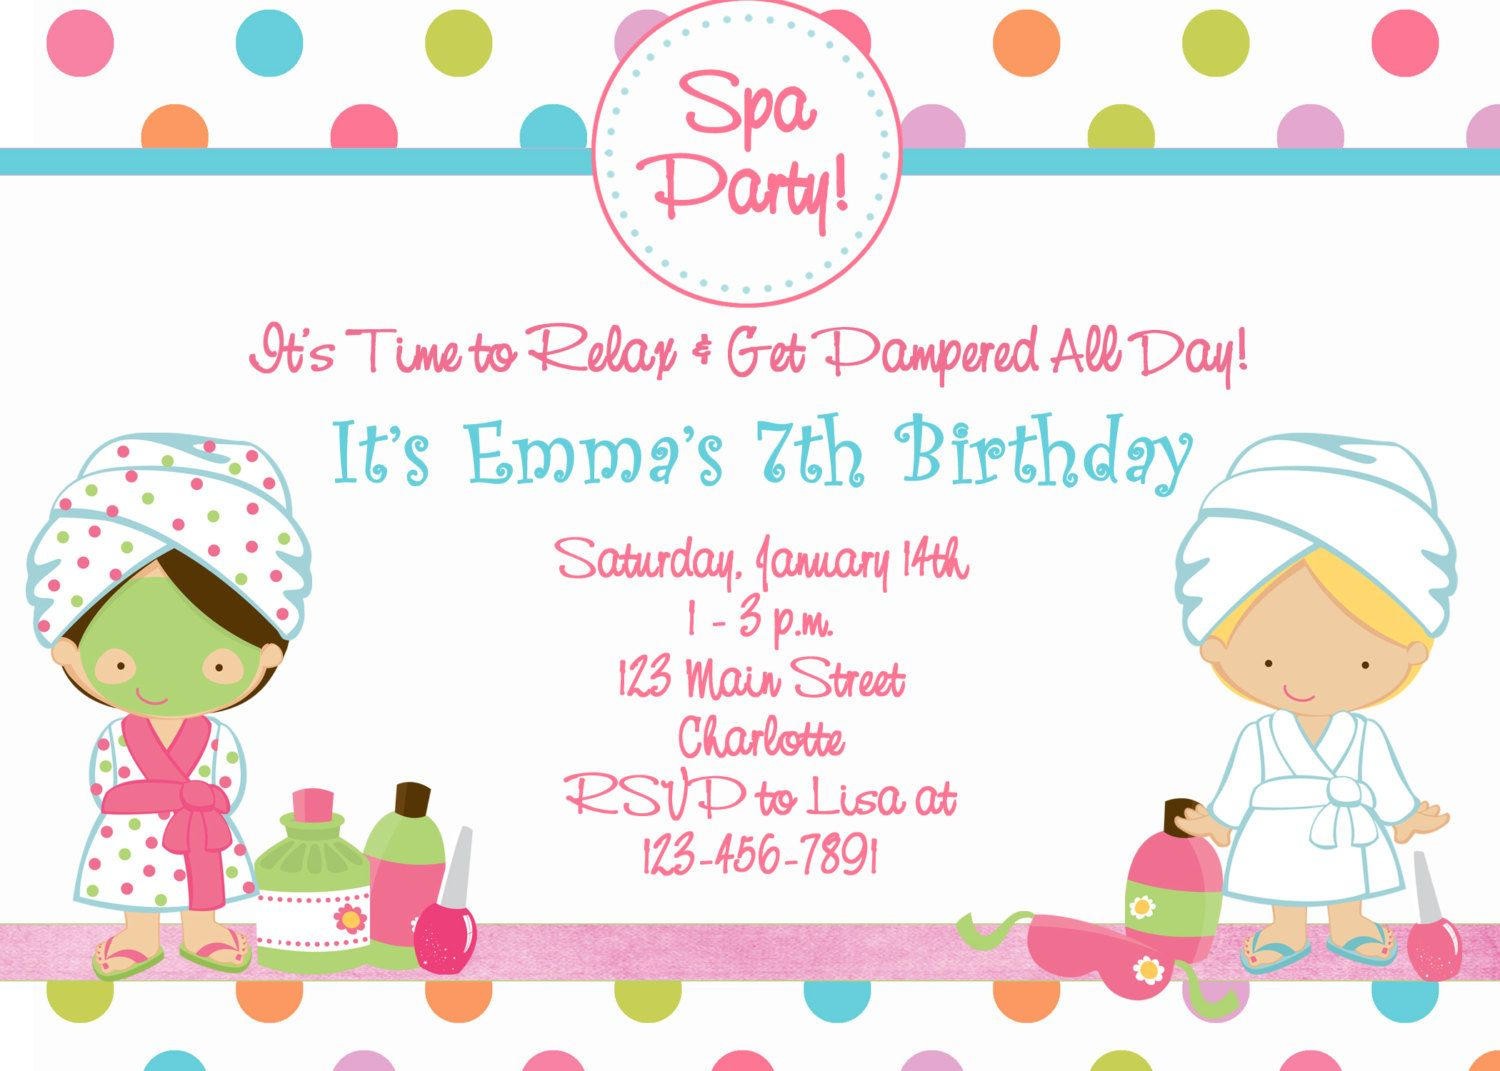 Free Printable Spa Birthday Party Invitations | Spa At Home - Free Printable Spa Party Invitations Templates